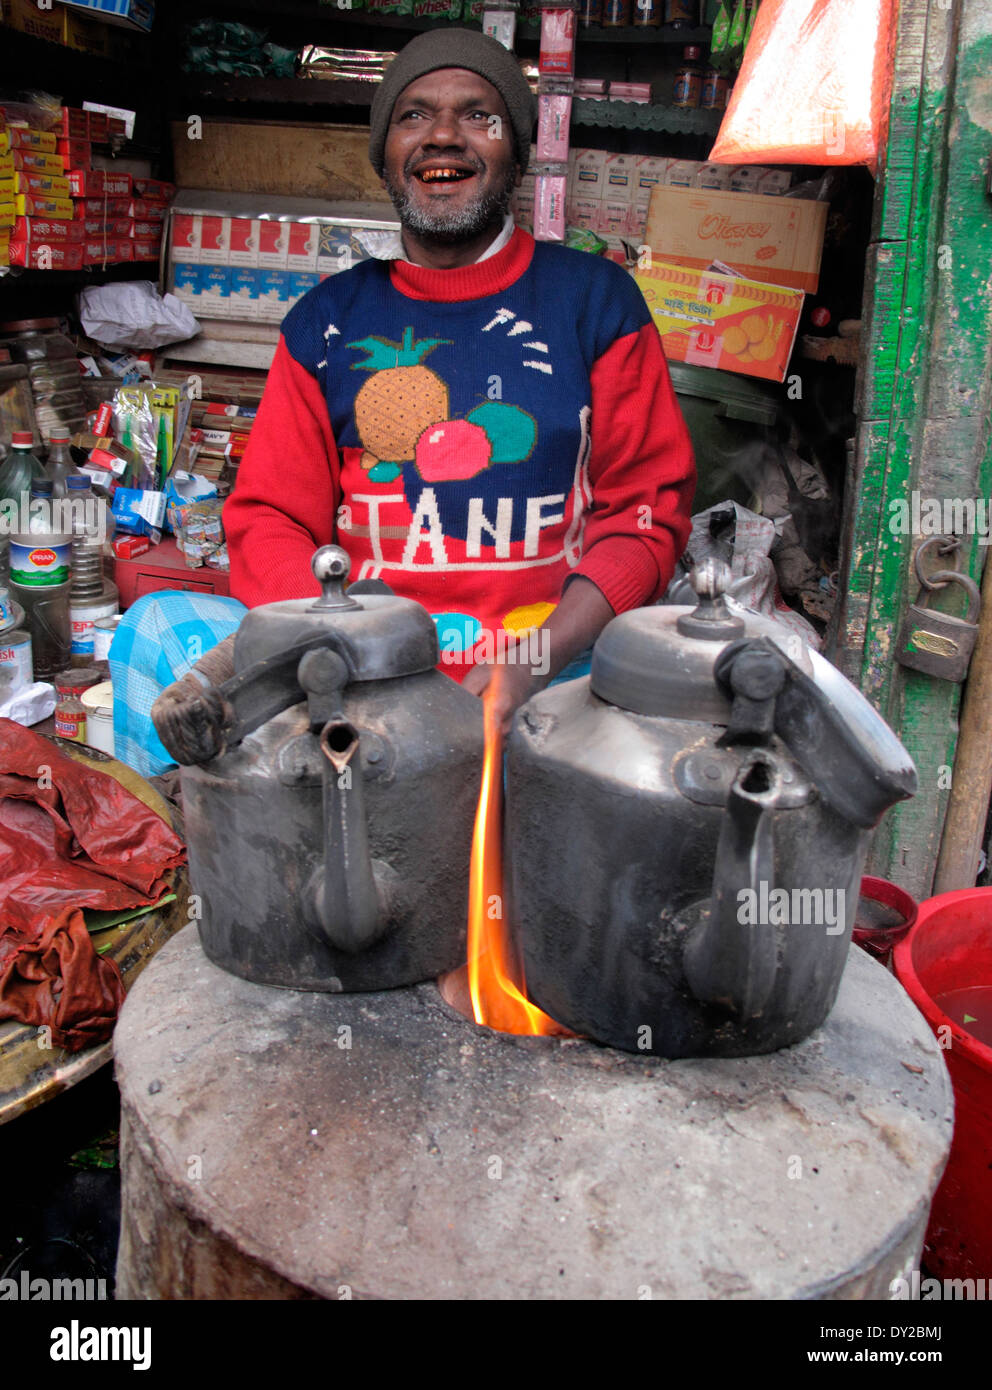 Cooking water for tea on fire - Stock Image